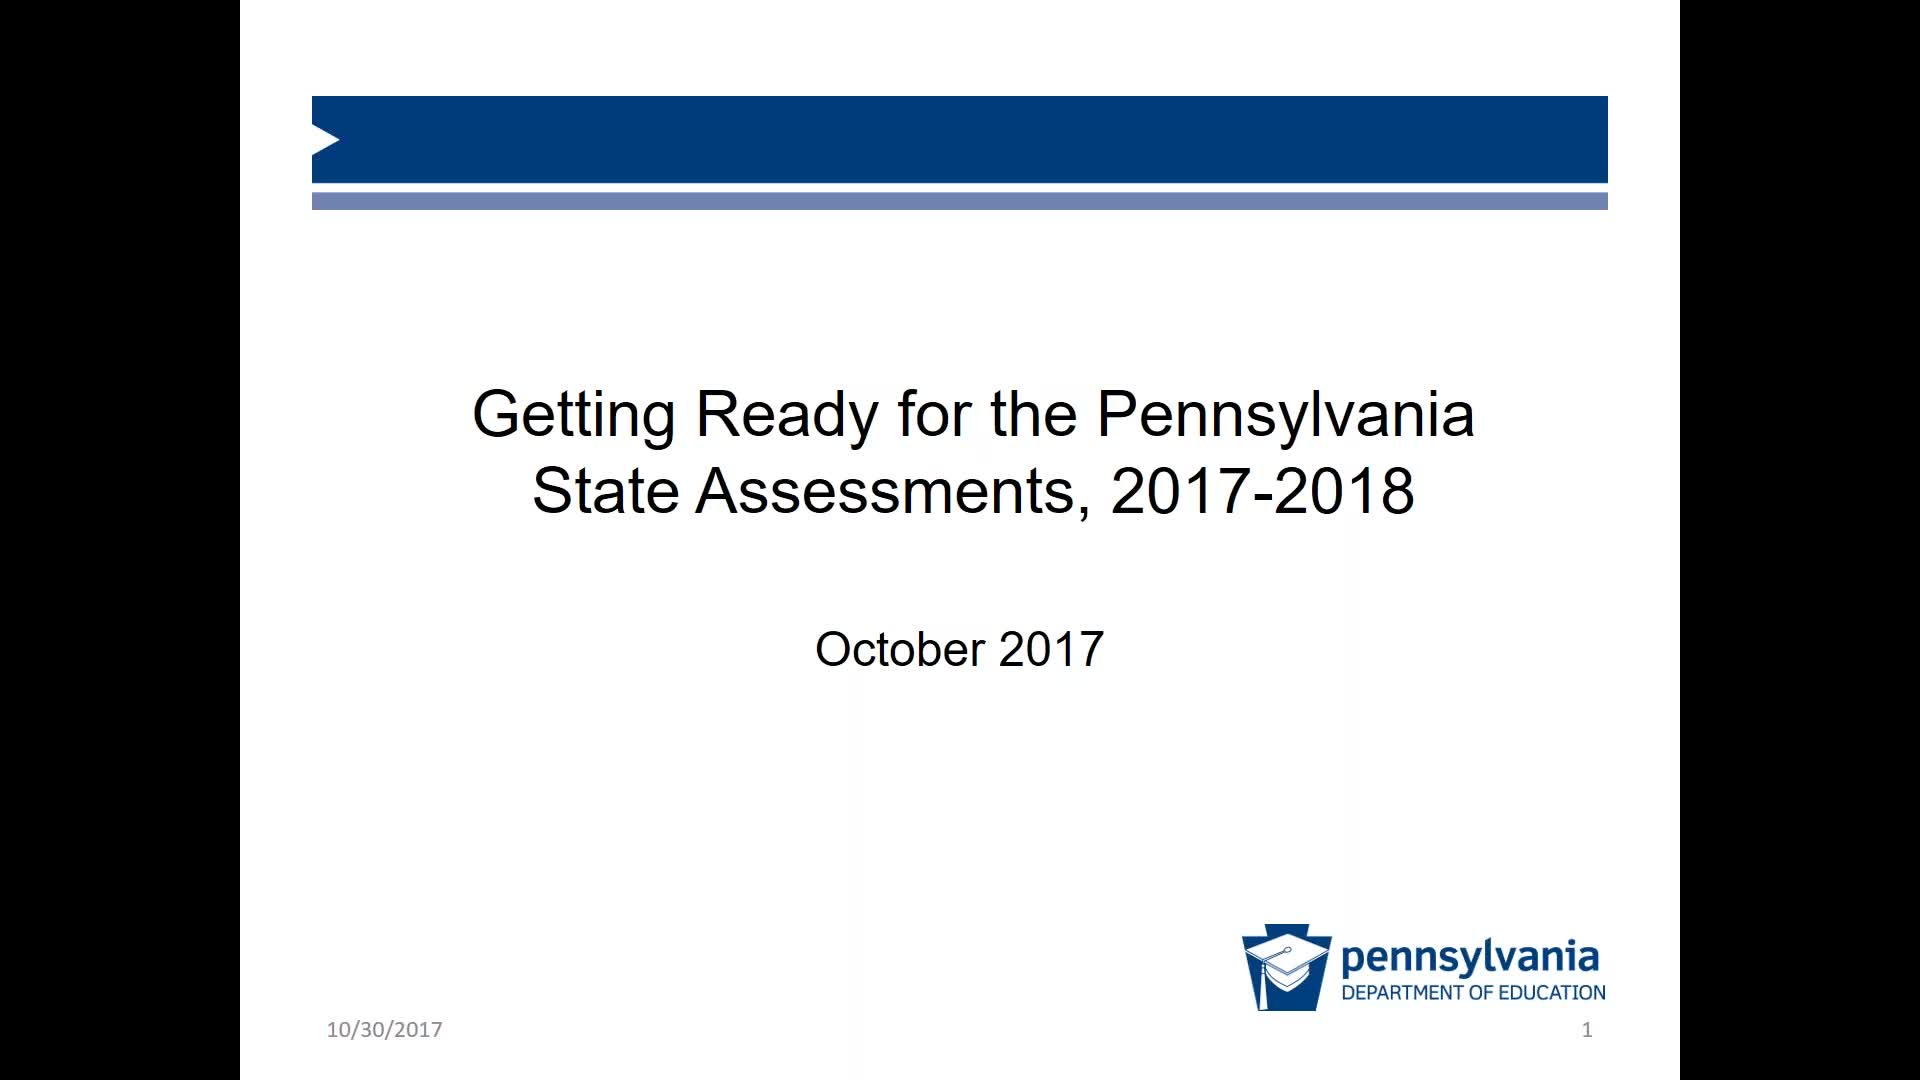 Getting Ready for 2018 Pennsylvania State Assessments